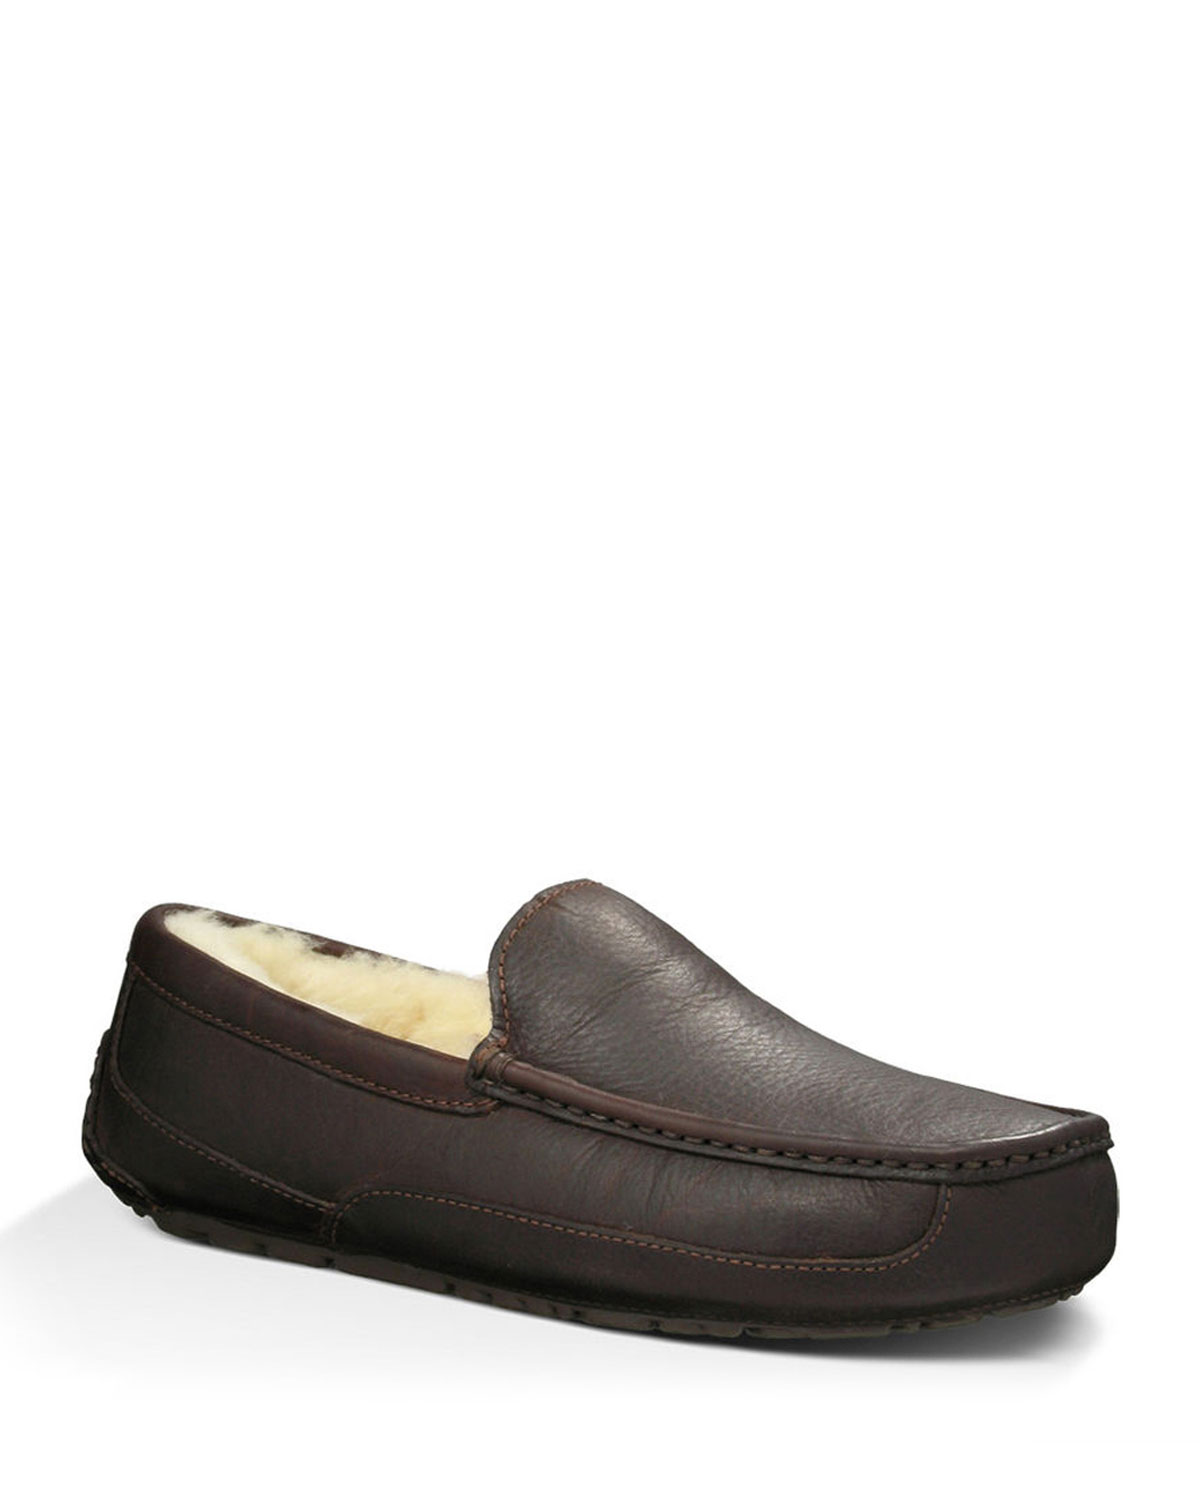 59966e1bb9a7d UGG Men's Ascot Water-Resistant Leather Slippers | Neiman Marcus